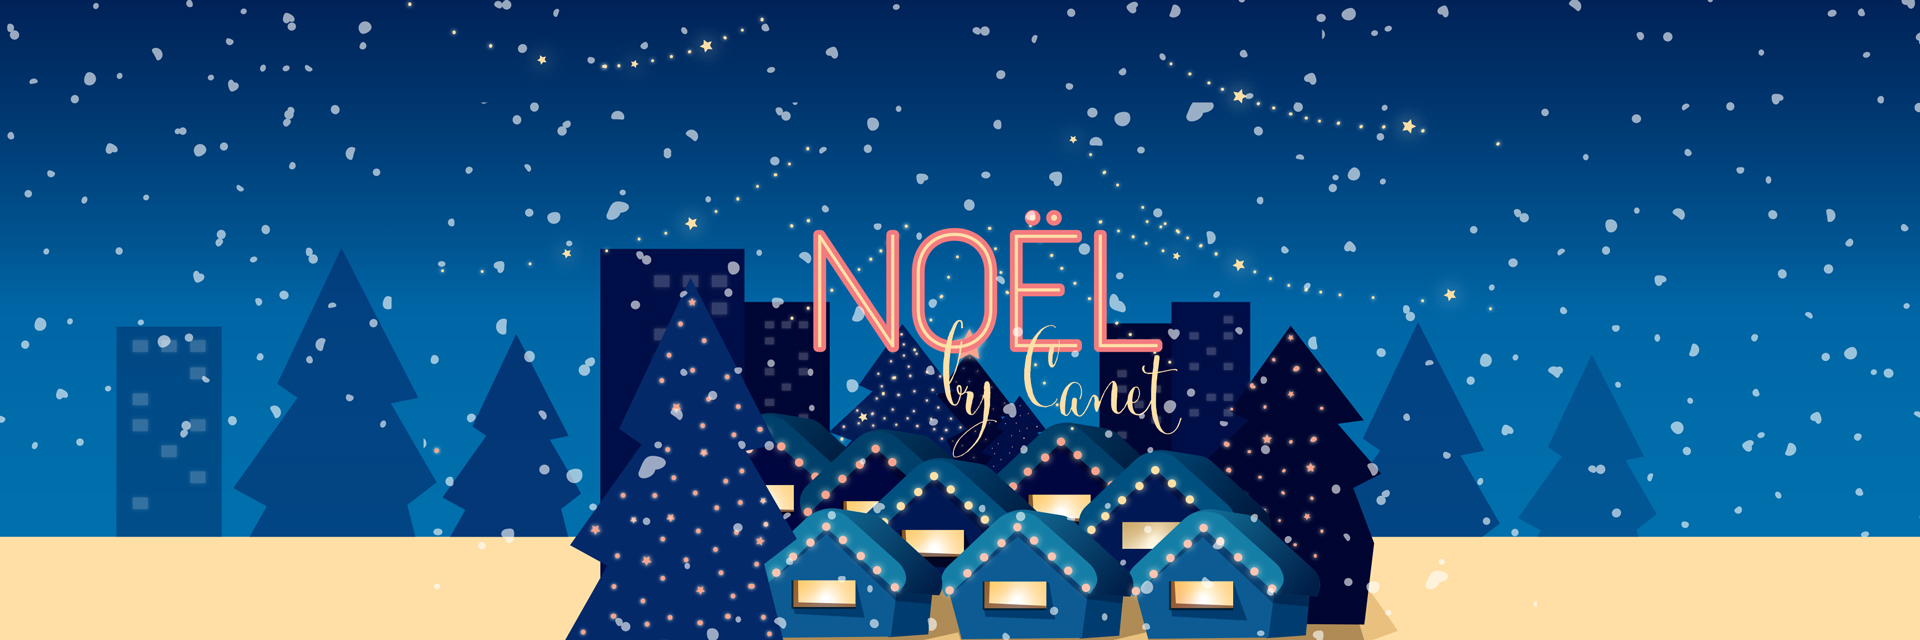 Noël by Canet